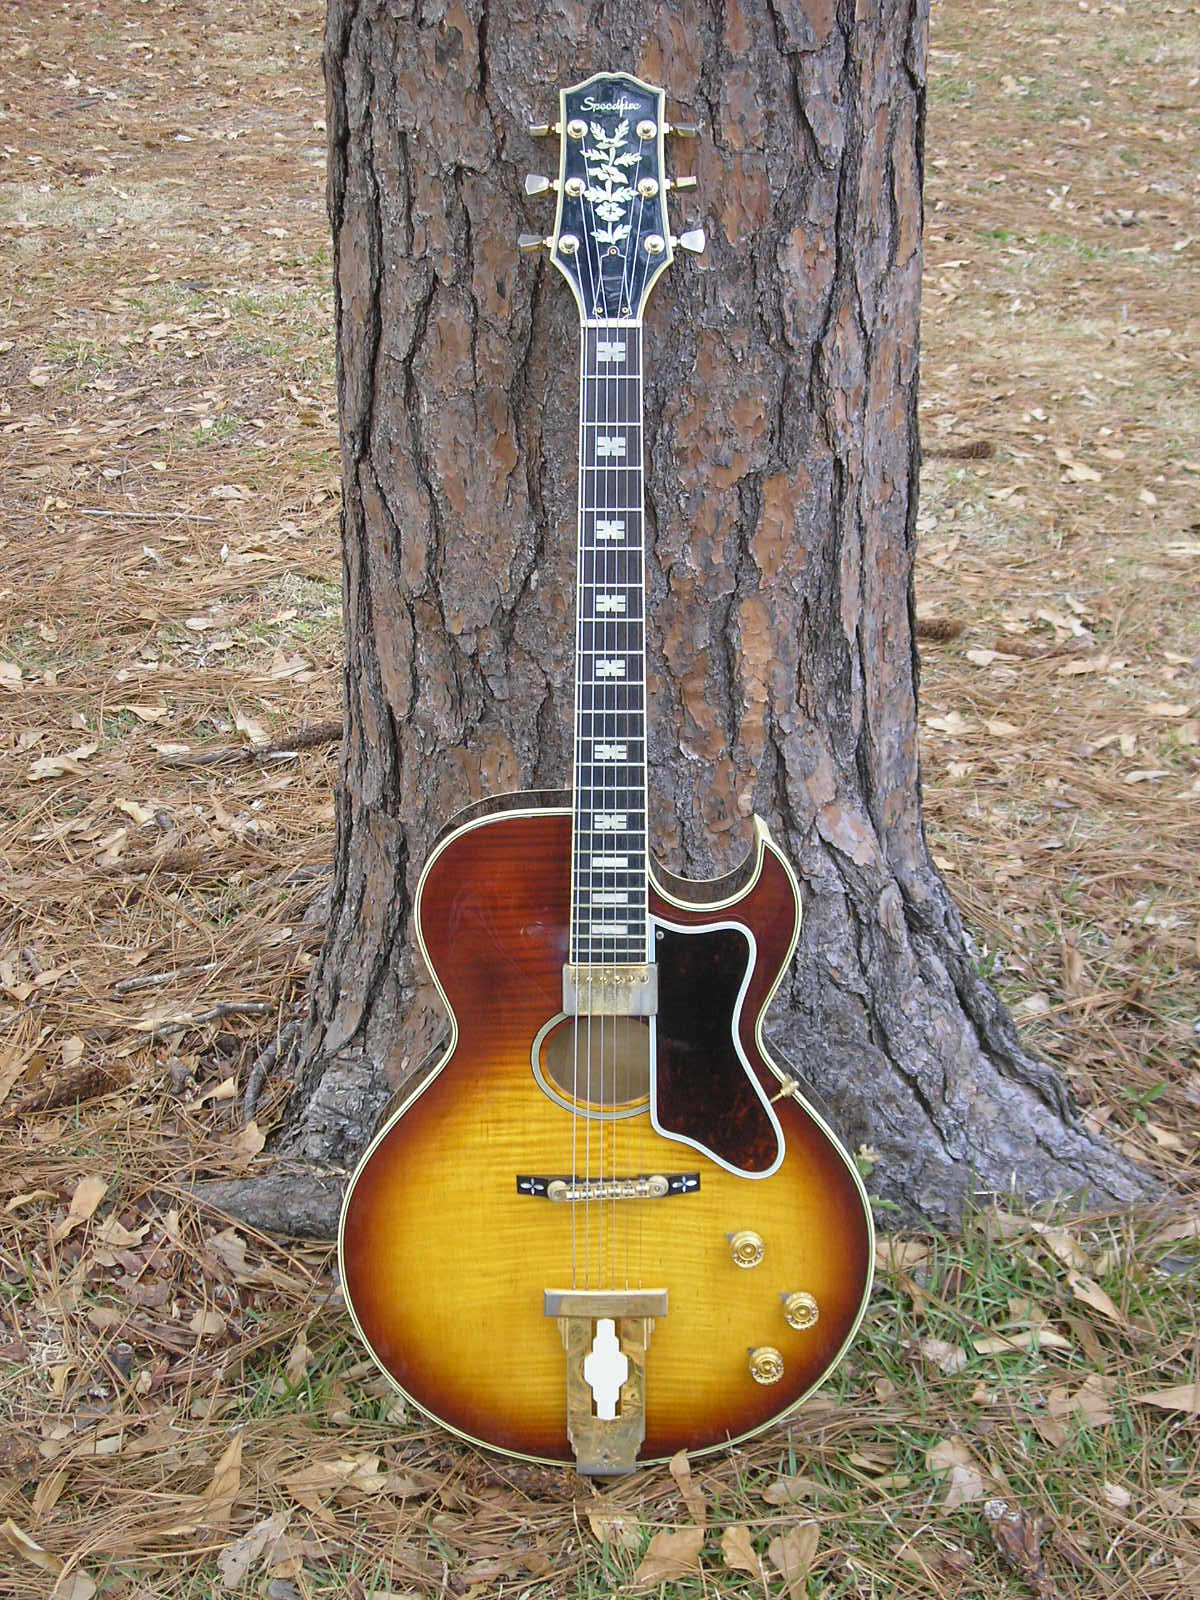 hight resolution of from jon dalton i ve learned that two versions of this guitar were sold in the united kingdom under the ibanez and antoria